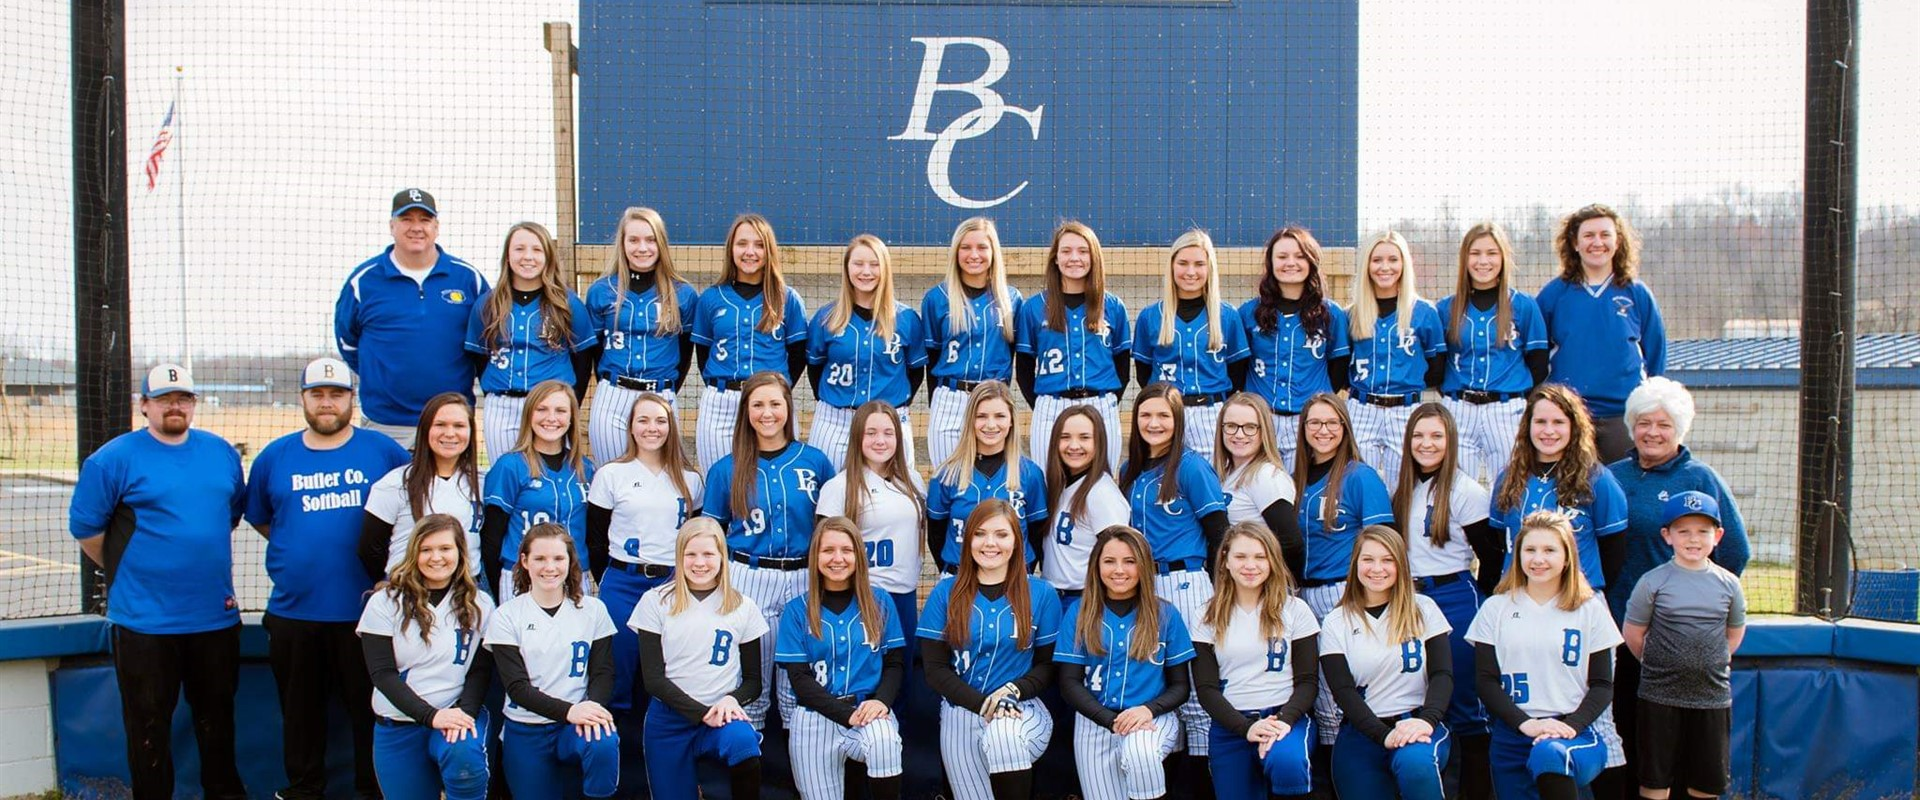 Softball Team 2019